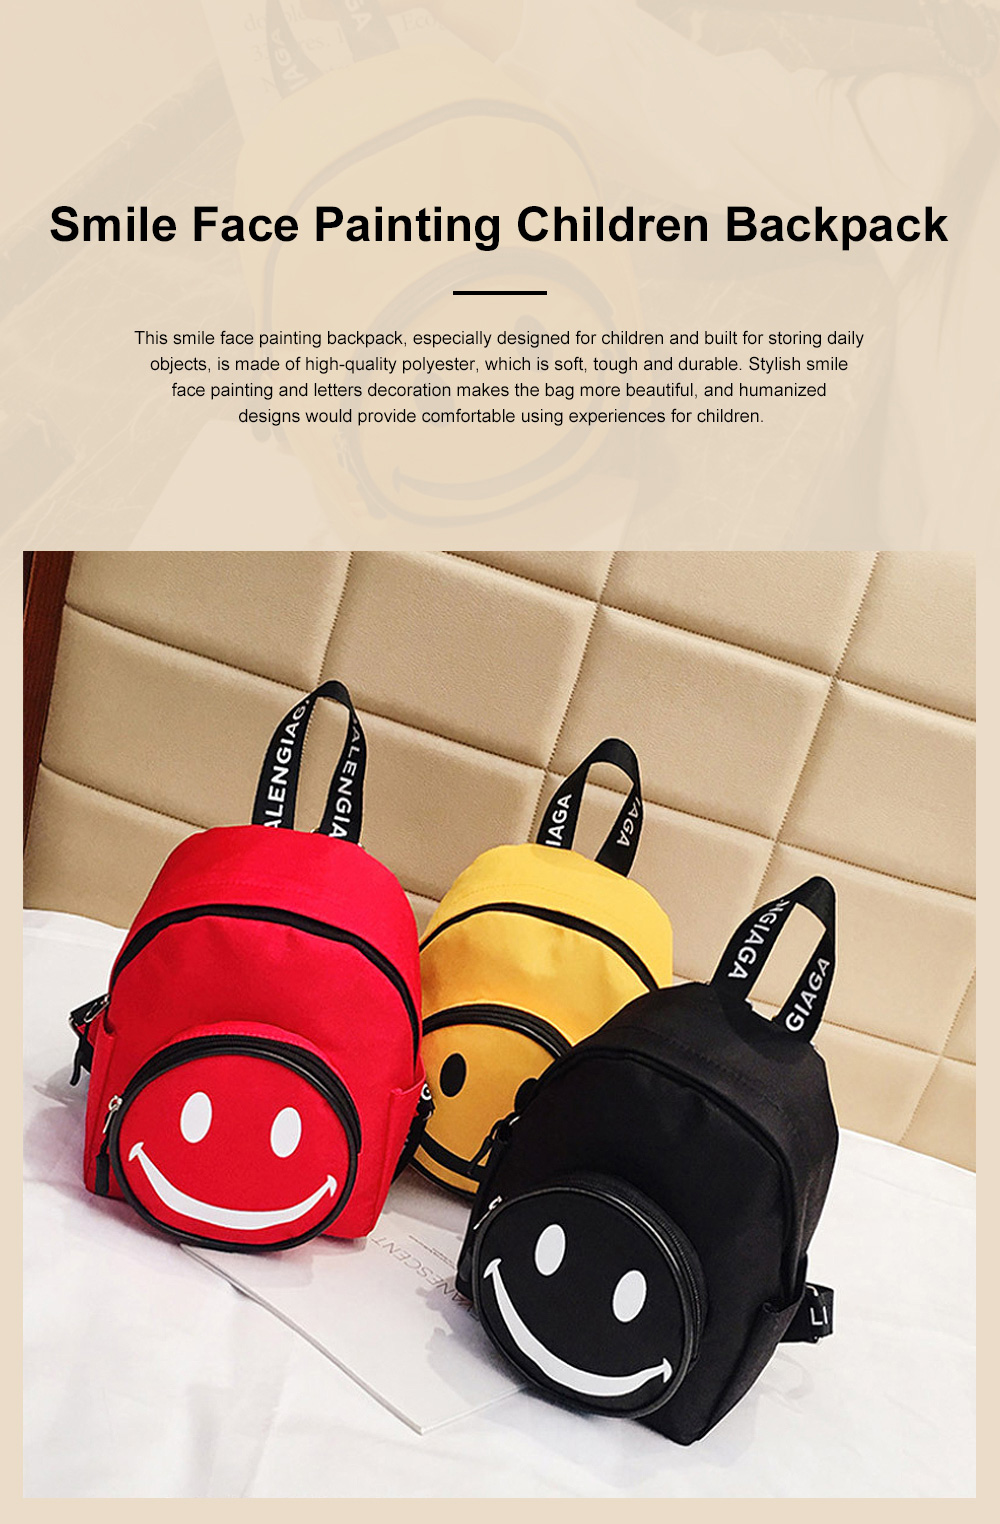 Cute Cartoon Smile Face Painting Children Backpack, Small Outdoors Traveling Shoulders Bag for Boys Girls 0